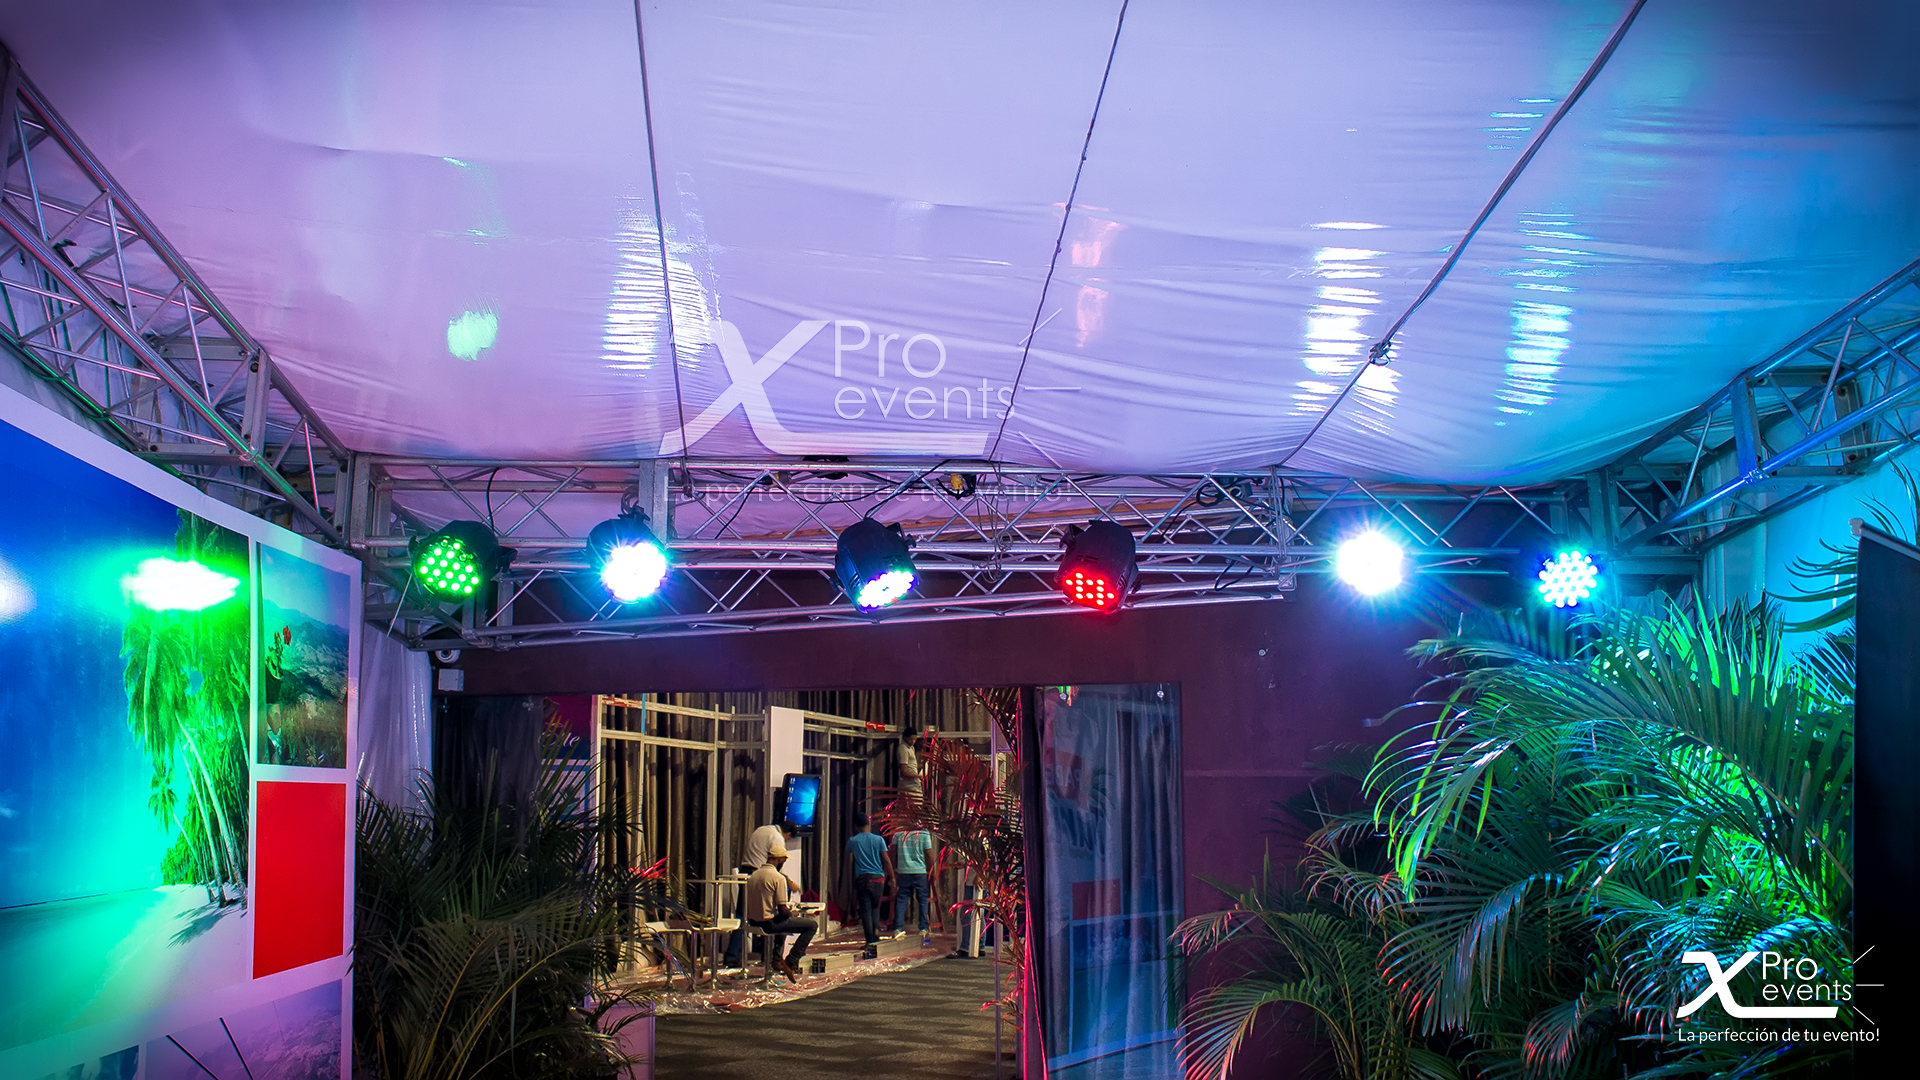 www.Xproevents.com - Truss & luces (Sambil)